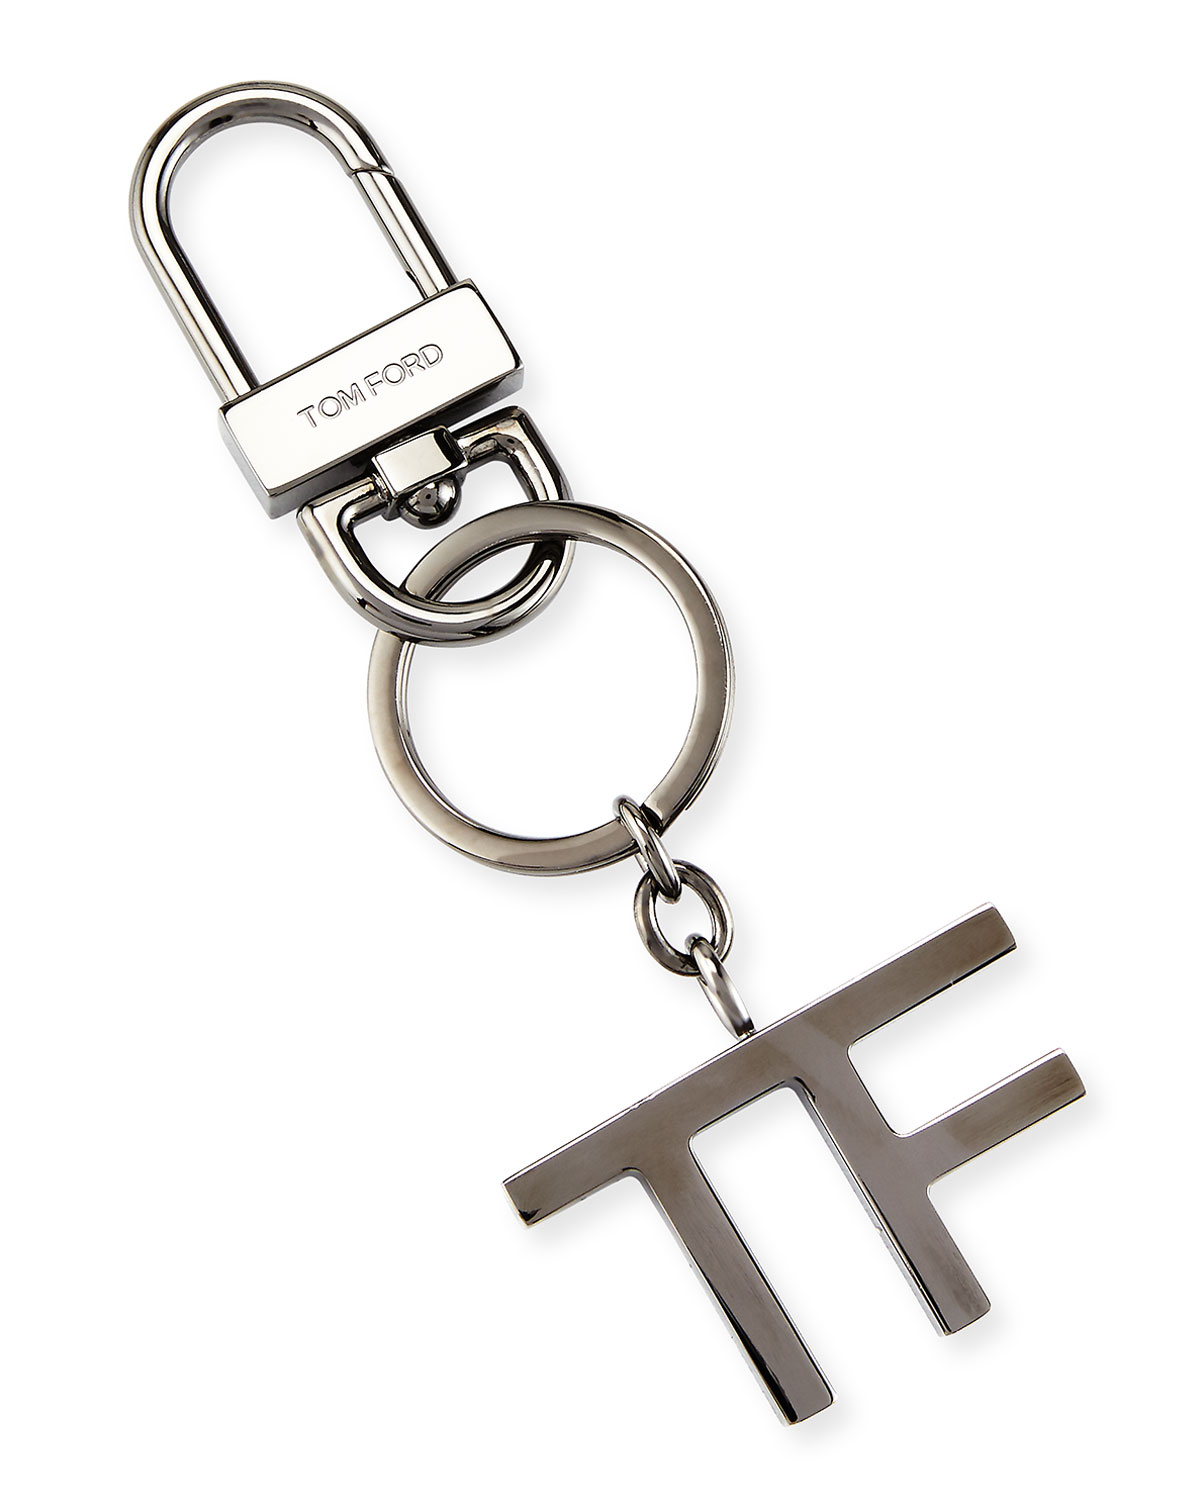 Tom Ford Metal Tf Keychain Gunmetal Neiman Marcus